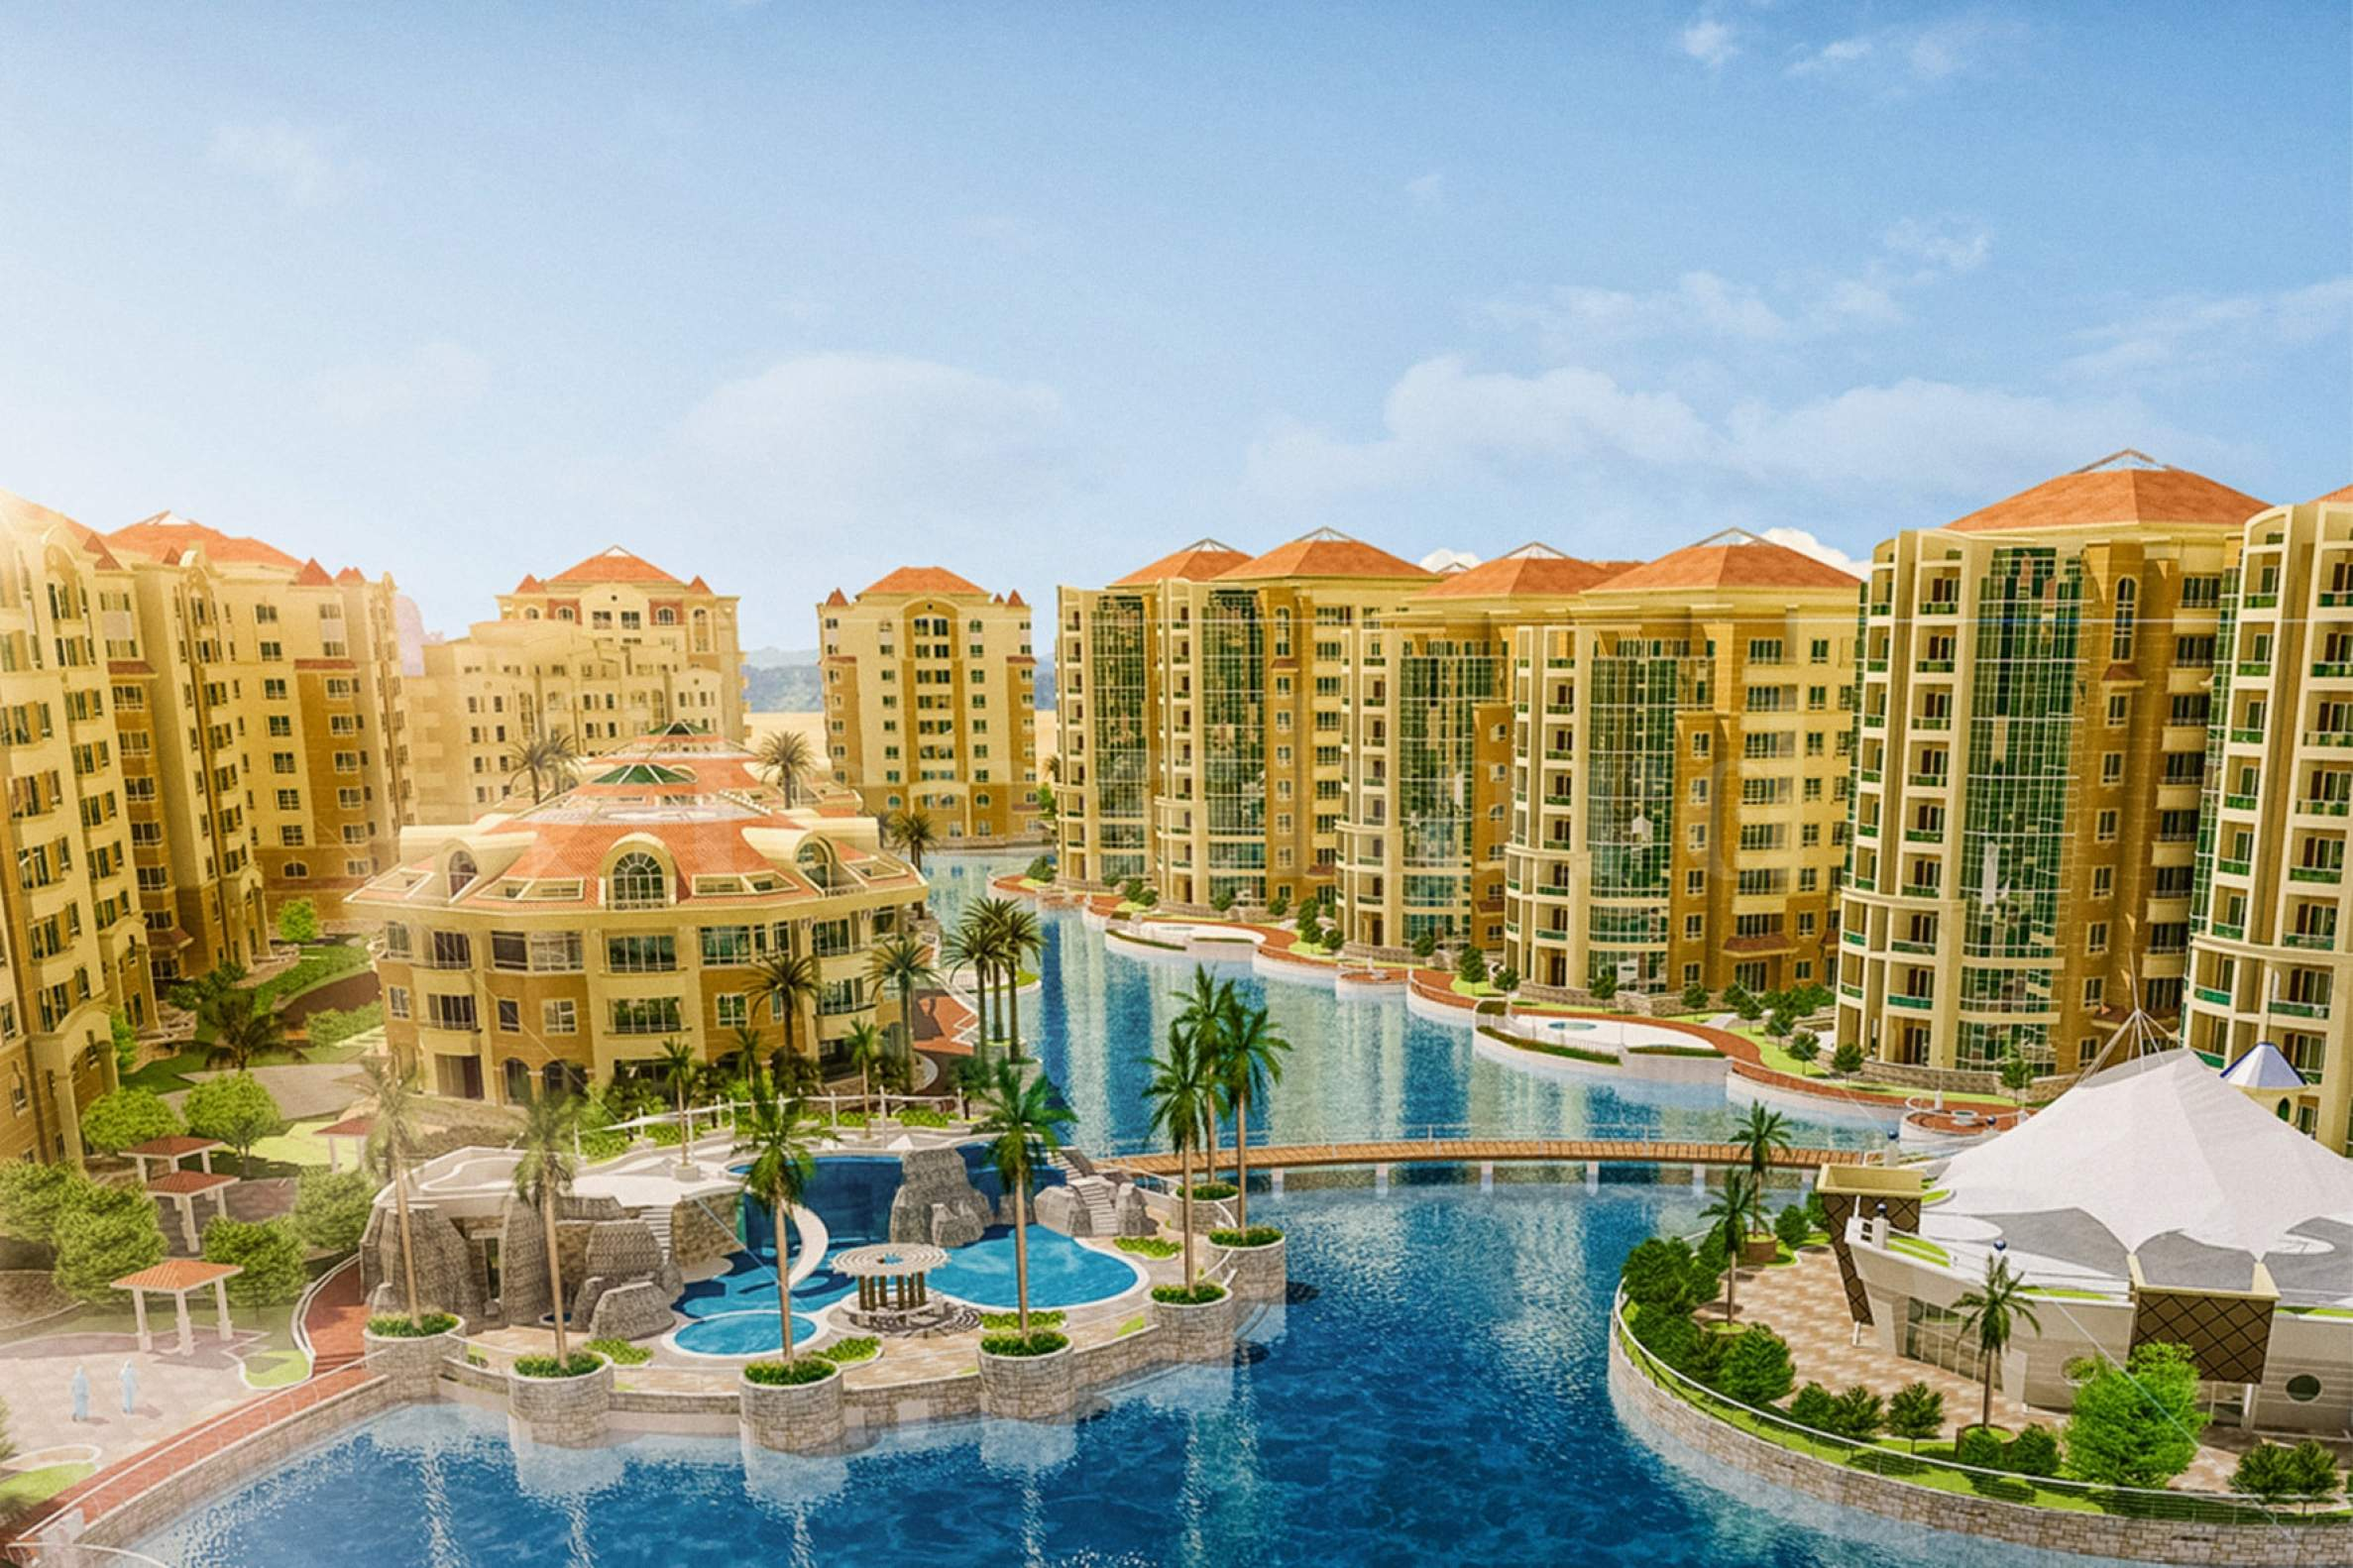 Luxury residential complex near lagoon in Dubai1 - Stonehard